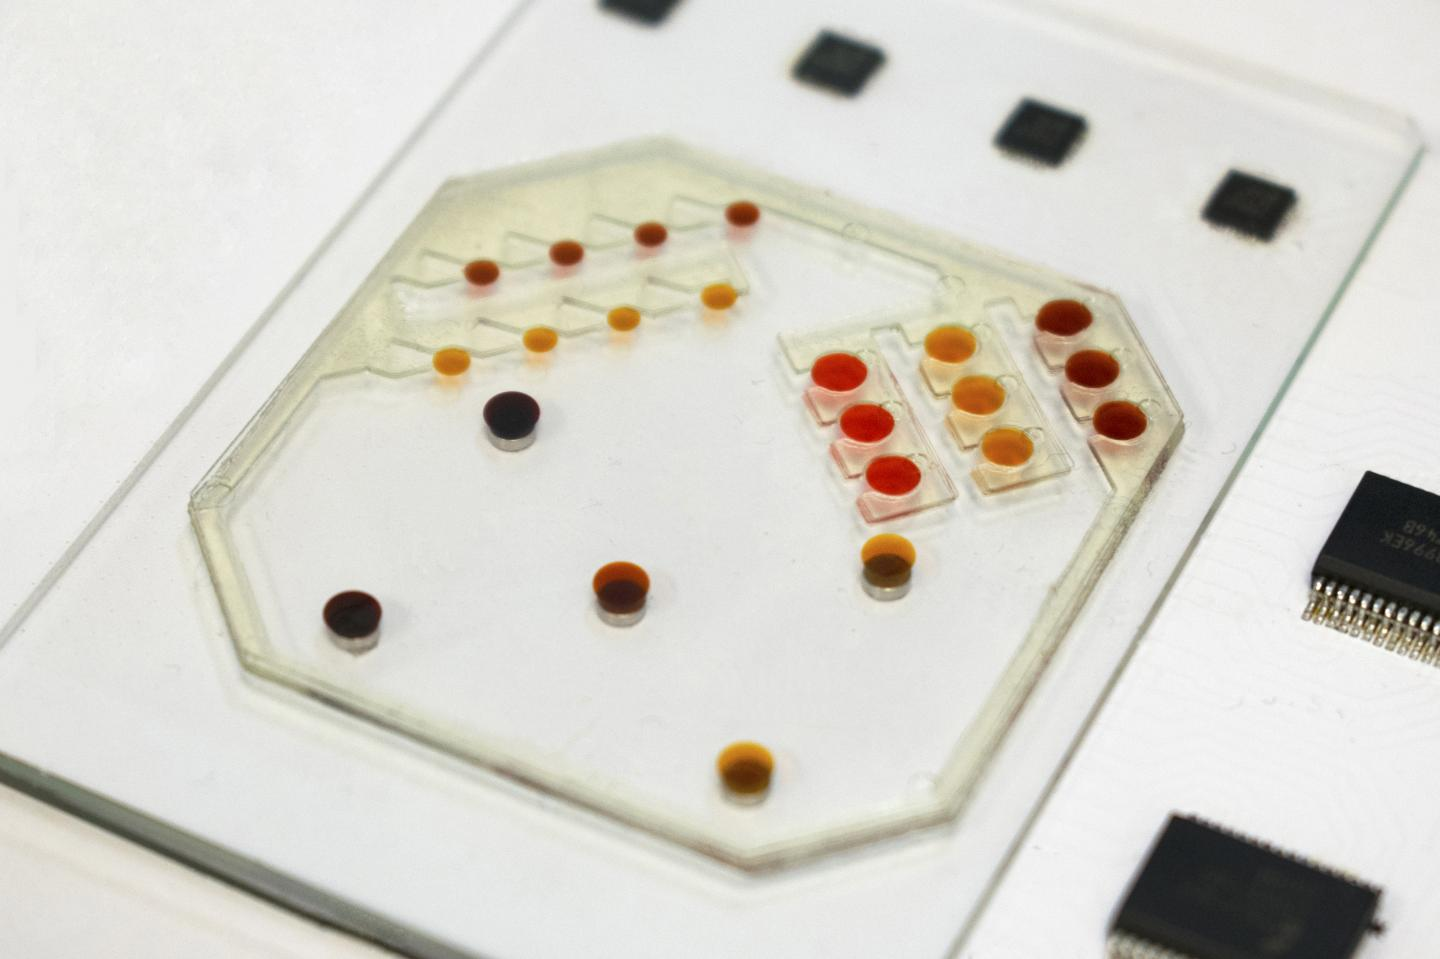 Photo of the Robots-On-A-Chip System